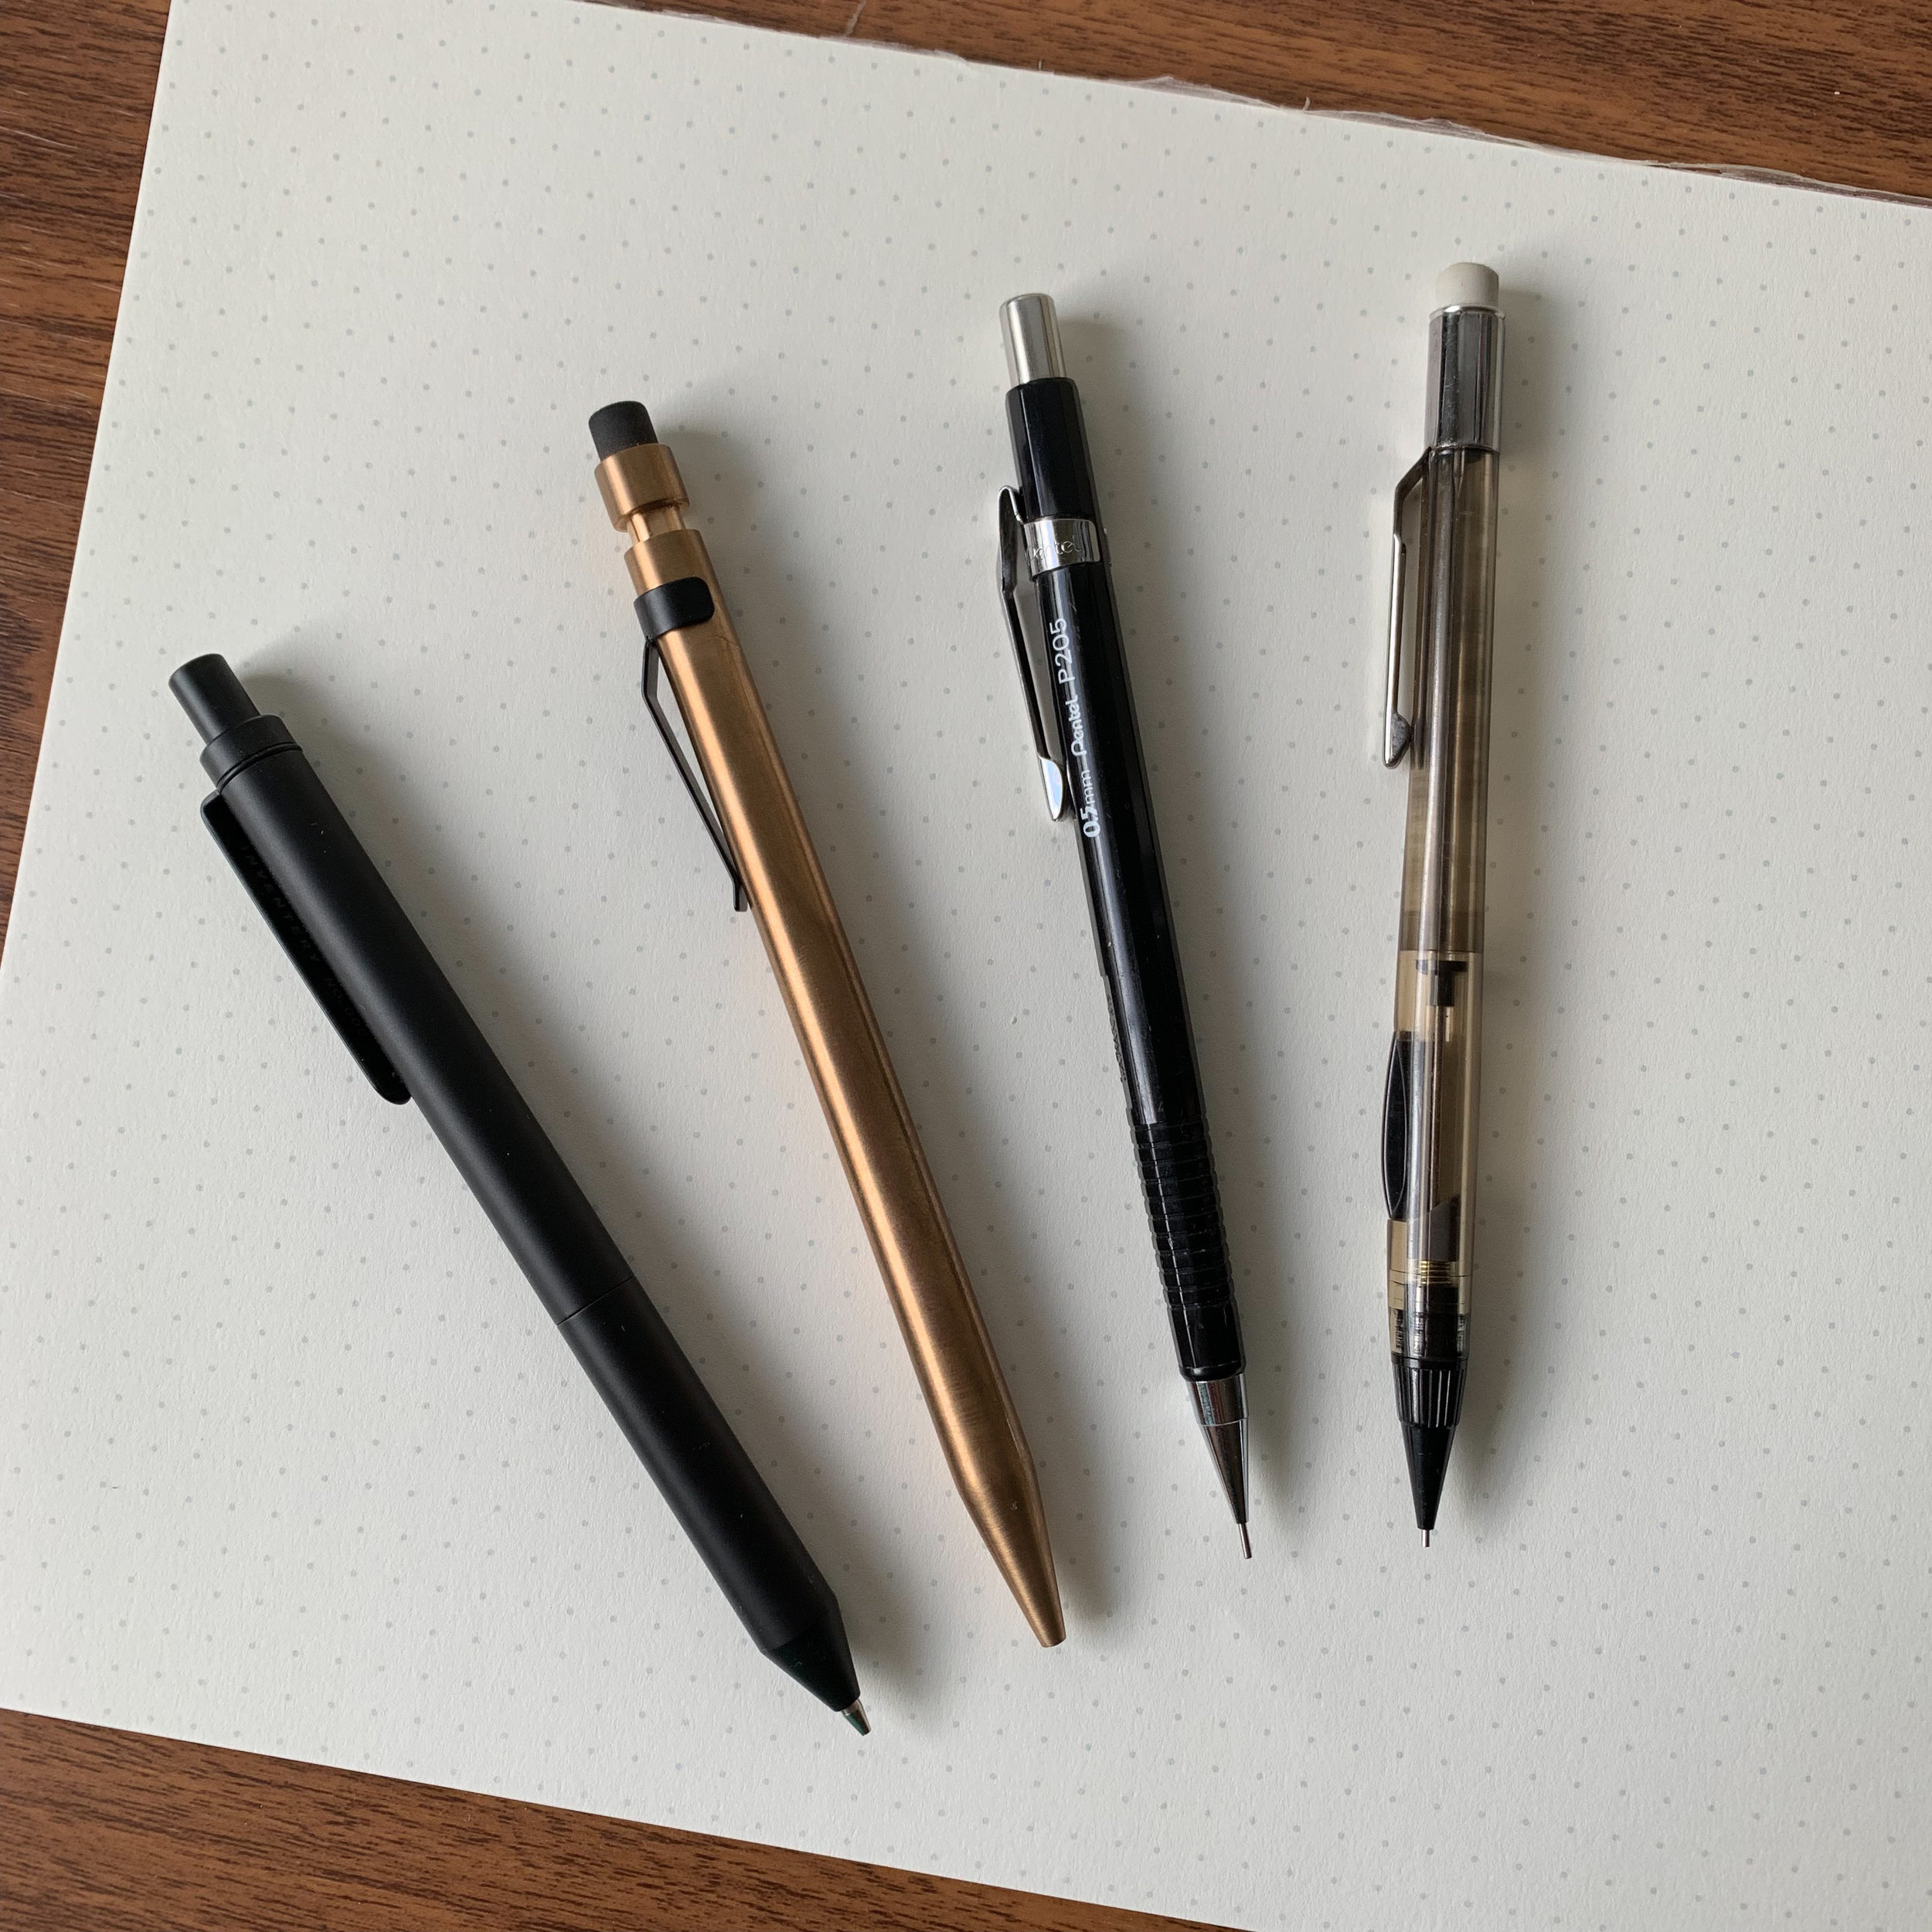 Honorable mention, from left: Inventery Interchangeable Mechanical Pen/Pencil; Modern Fuel Mechanical Pencil; Pentel Sharp, and mid-1990s era Pentel Quicker Clicker (which has somehow survived 25+ years of solid use).